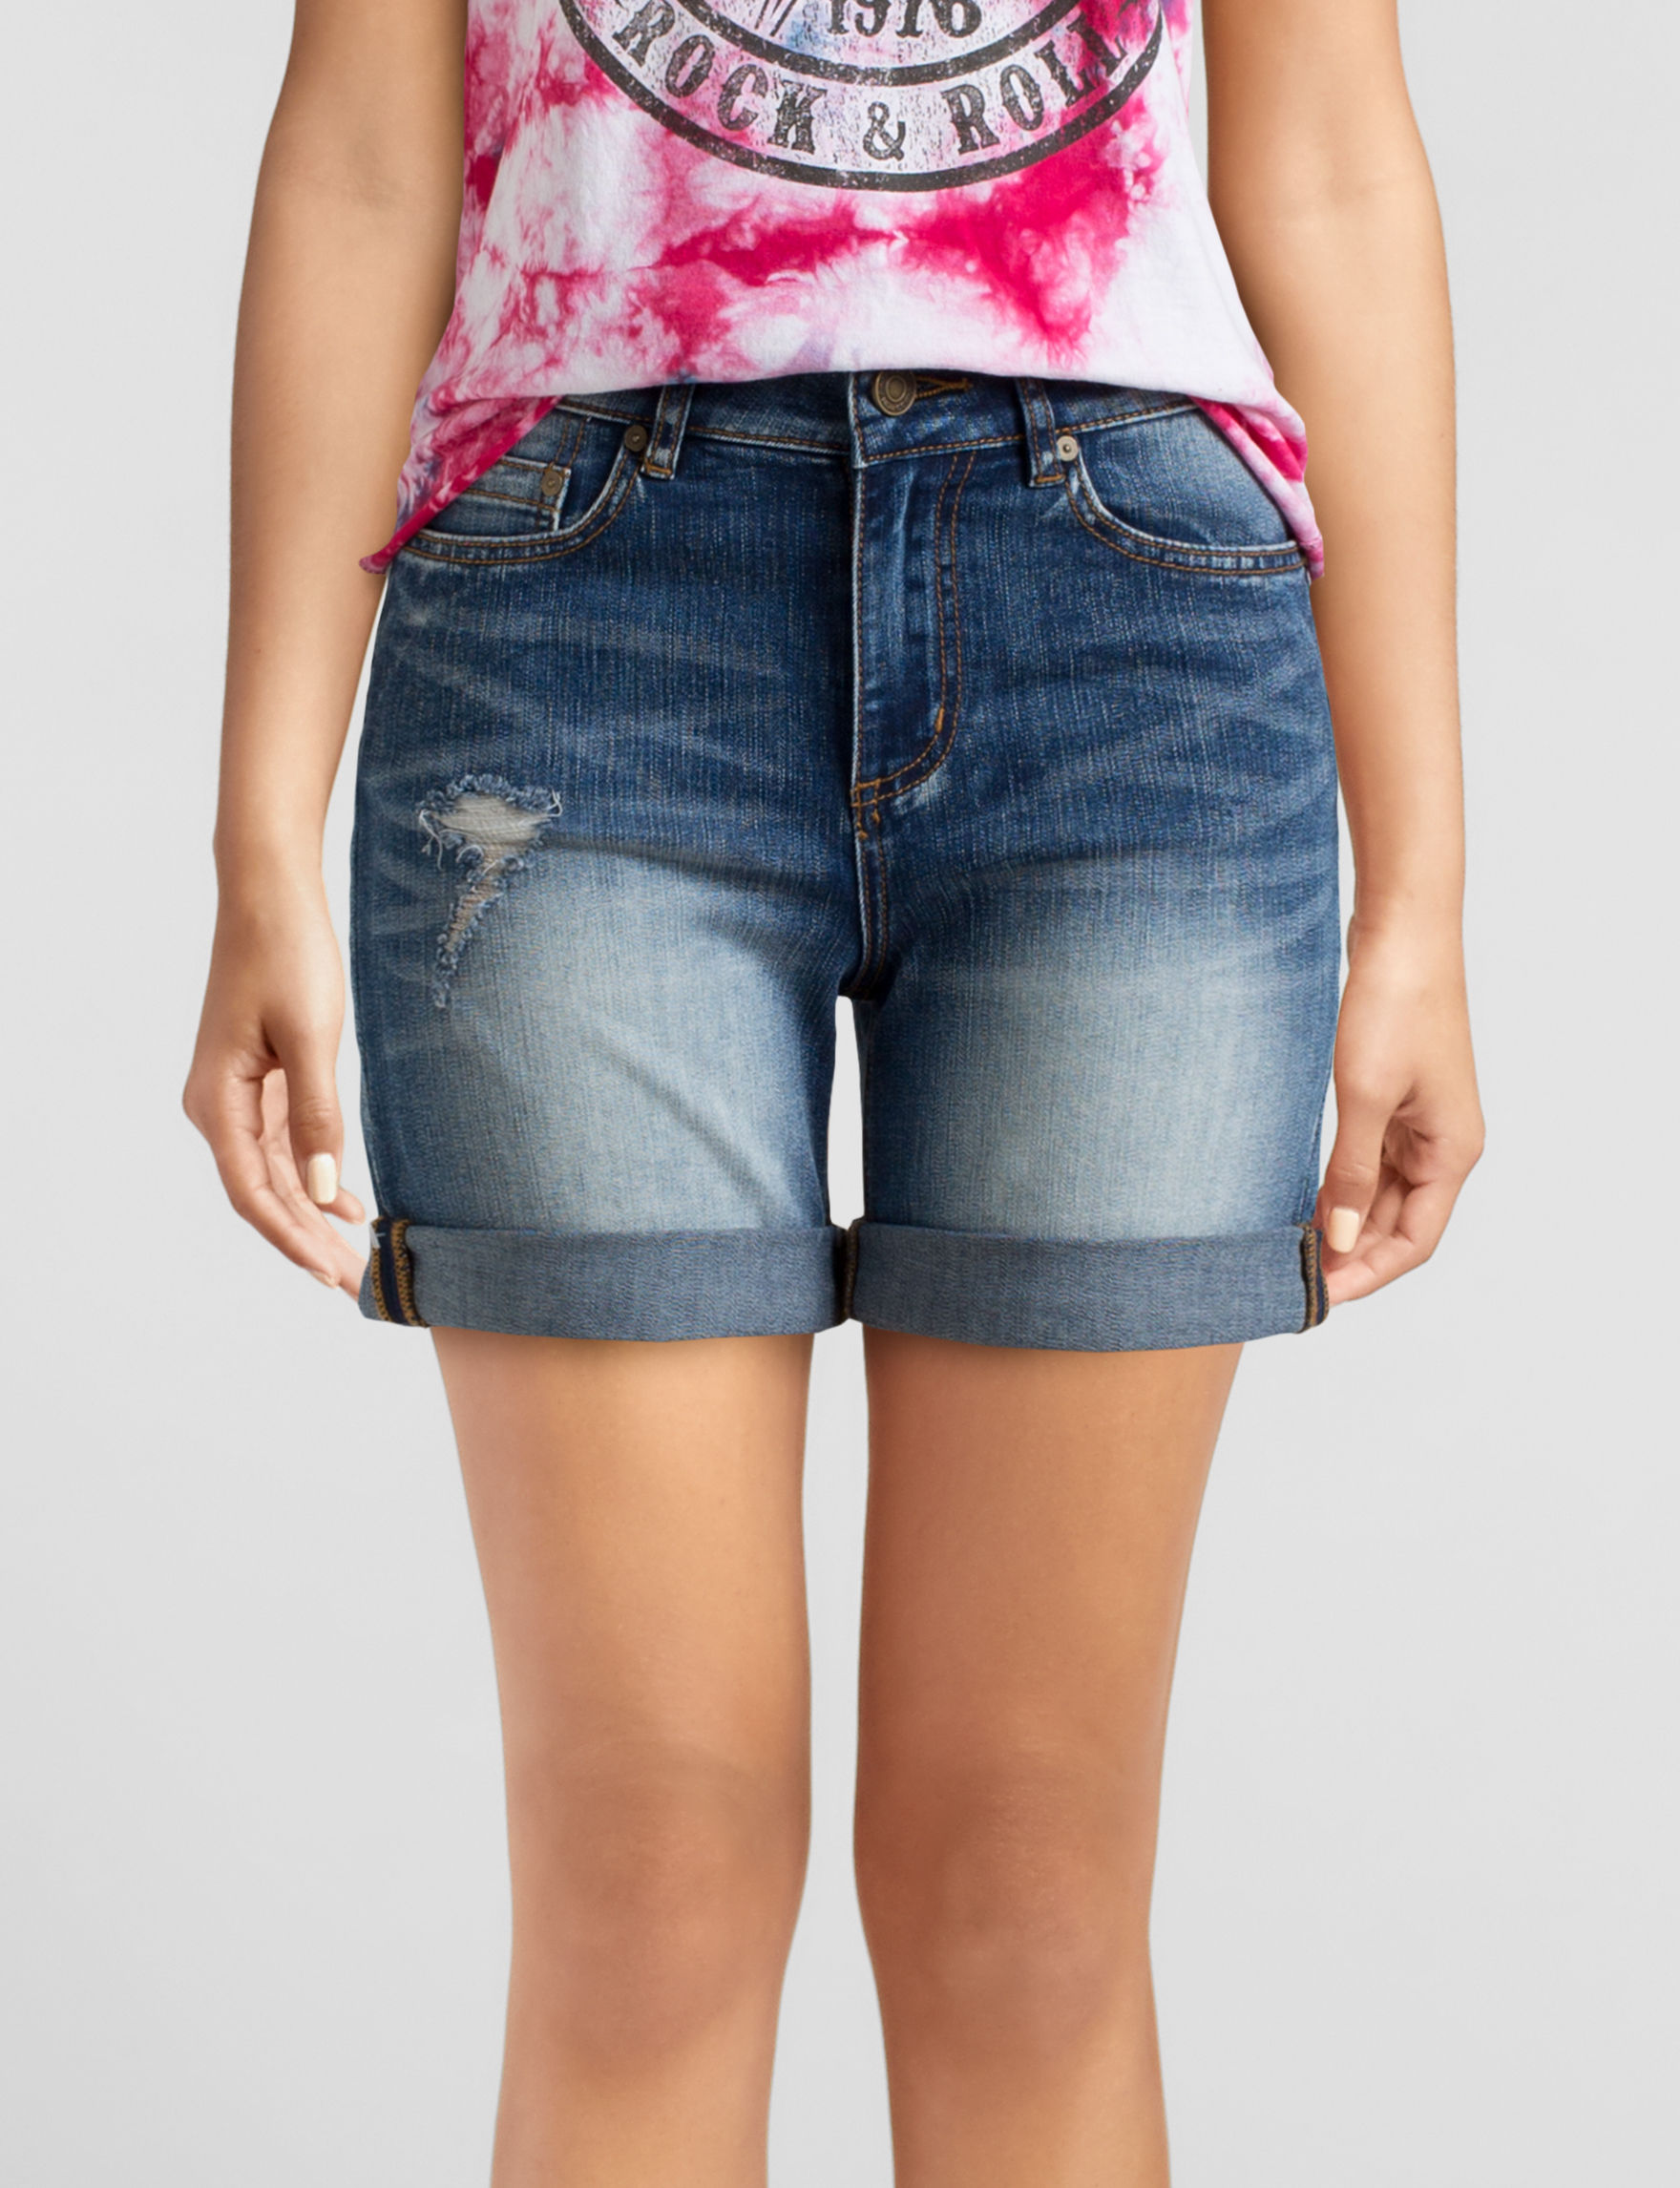 Indigo Rein Medium Blue Denim Shorts